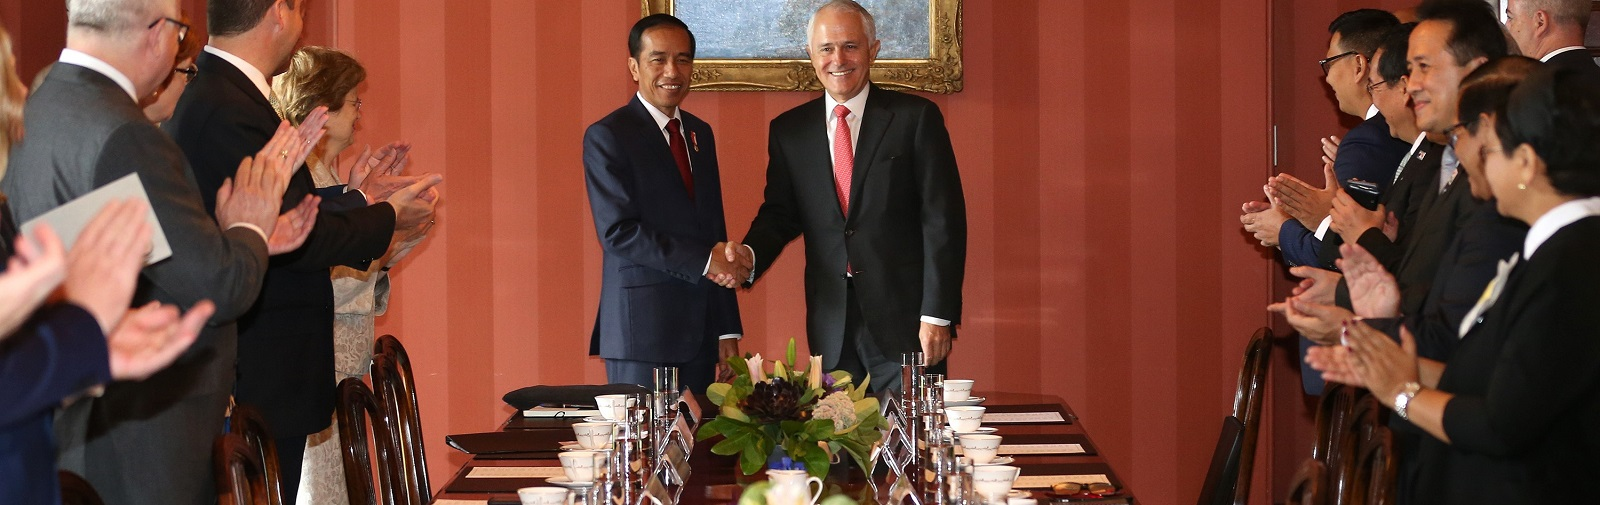 Australian PM Malcolm Turnbull and Indonesia President Joko Widodo during talks at Admiralty House in Sydney on 26 February. (Photo: David Moir/AFP/Getty Images)